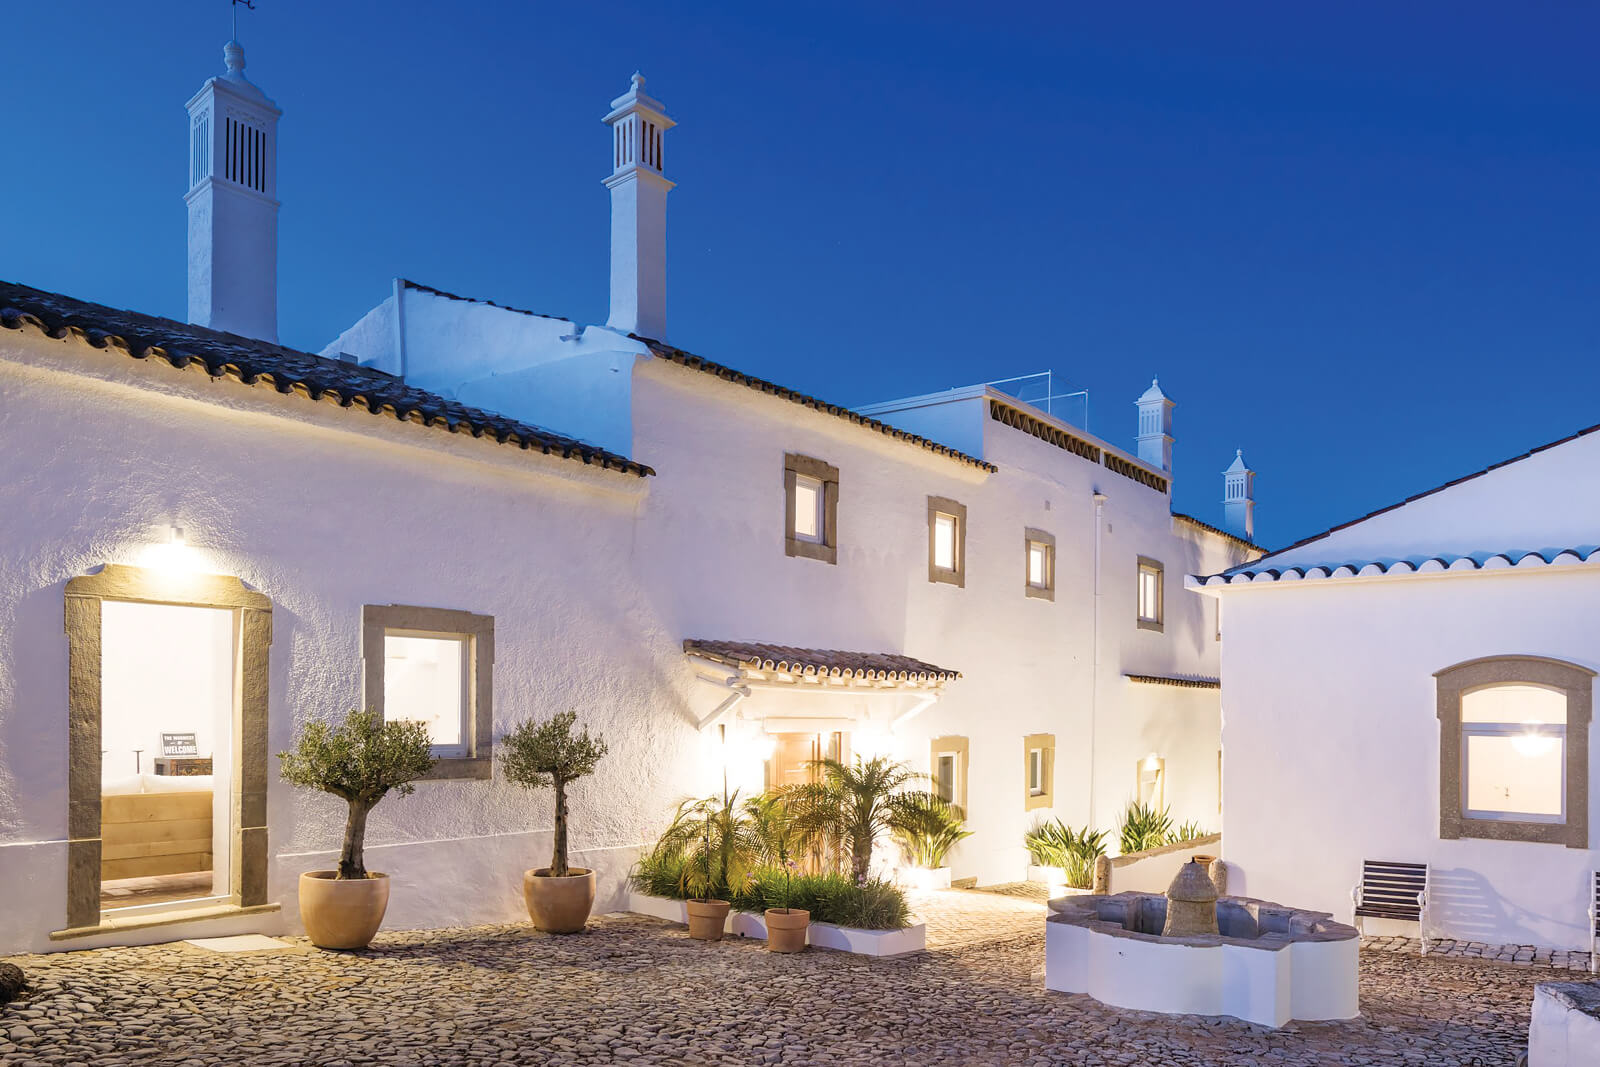 Farmhouse of the Palms Guesthouse, Faro, Portugal   vacation home rentals